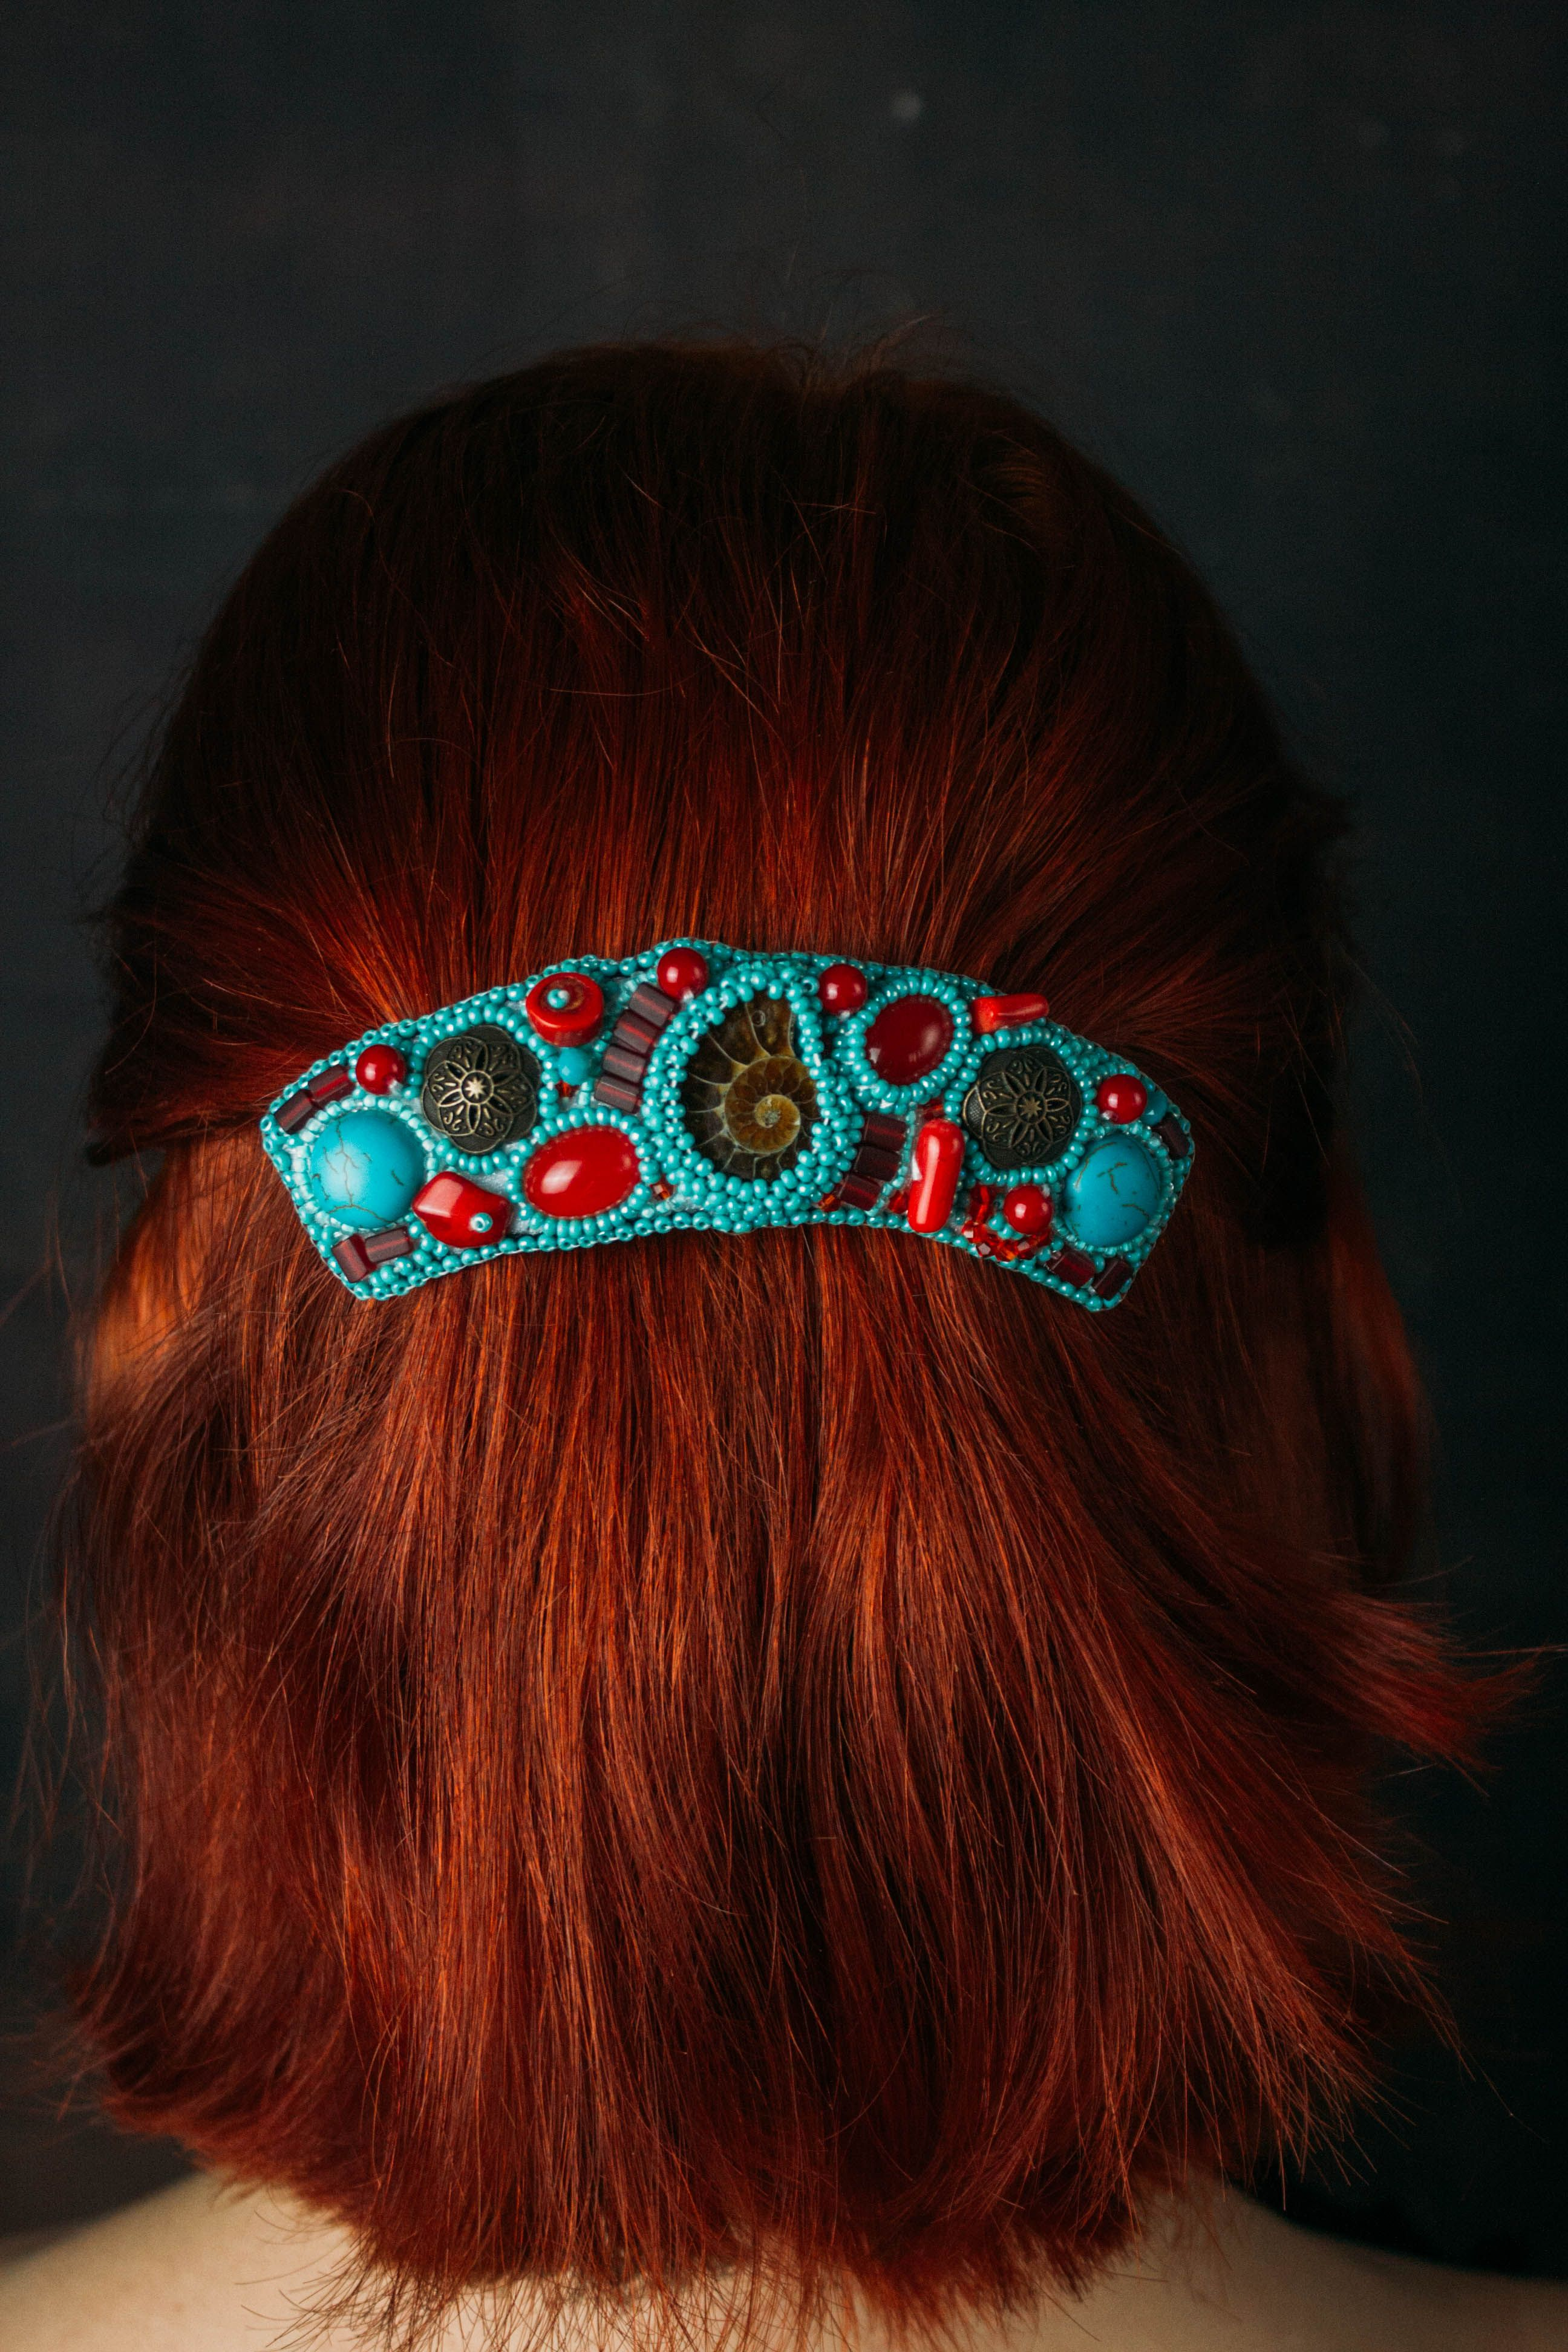 Handcrafted hair barette large colorful with hearts